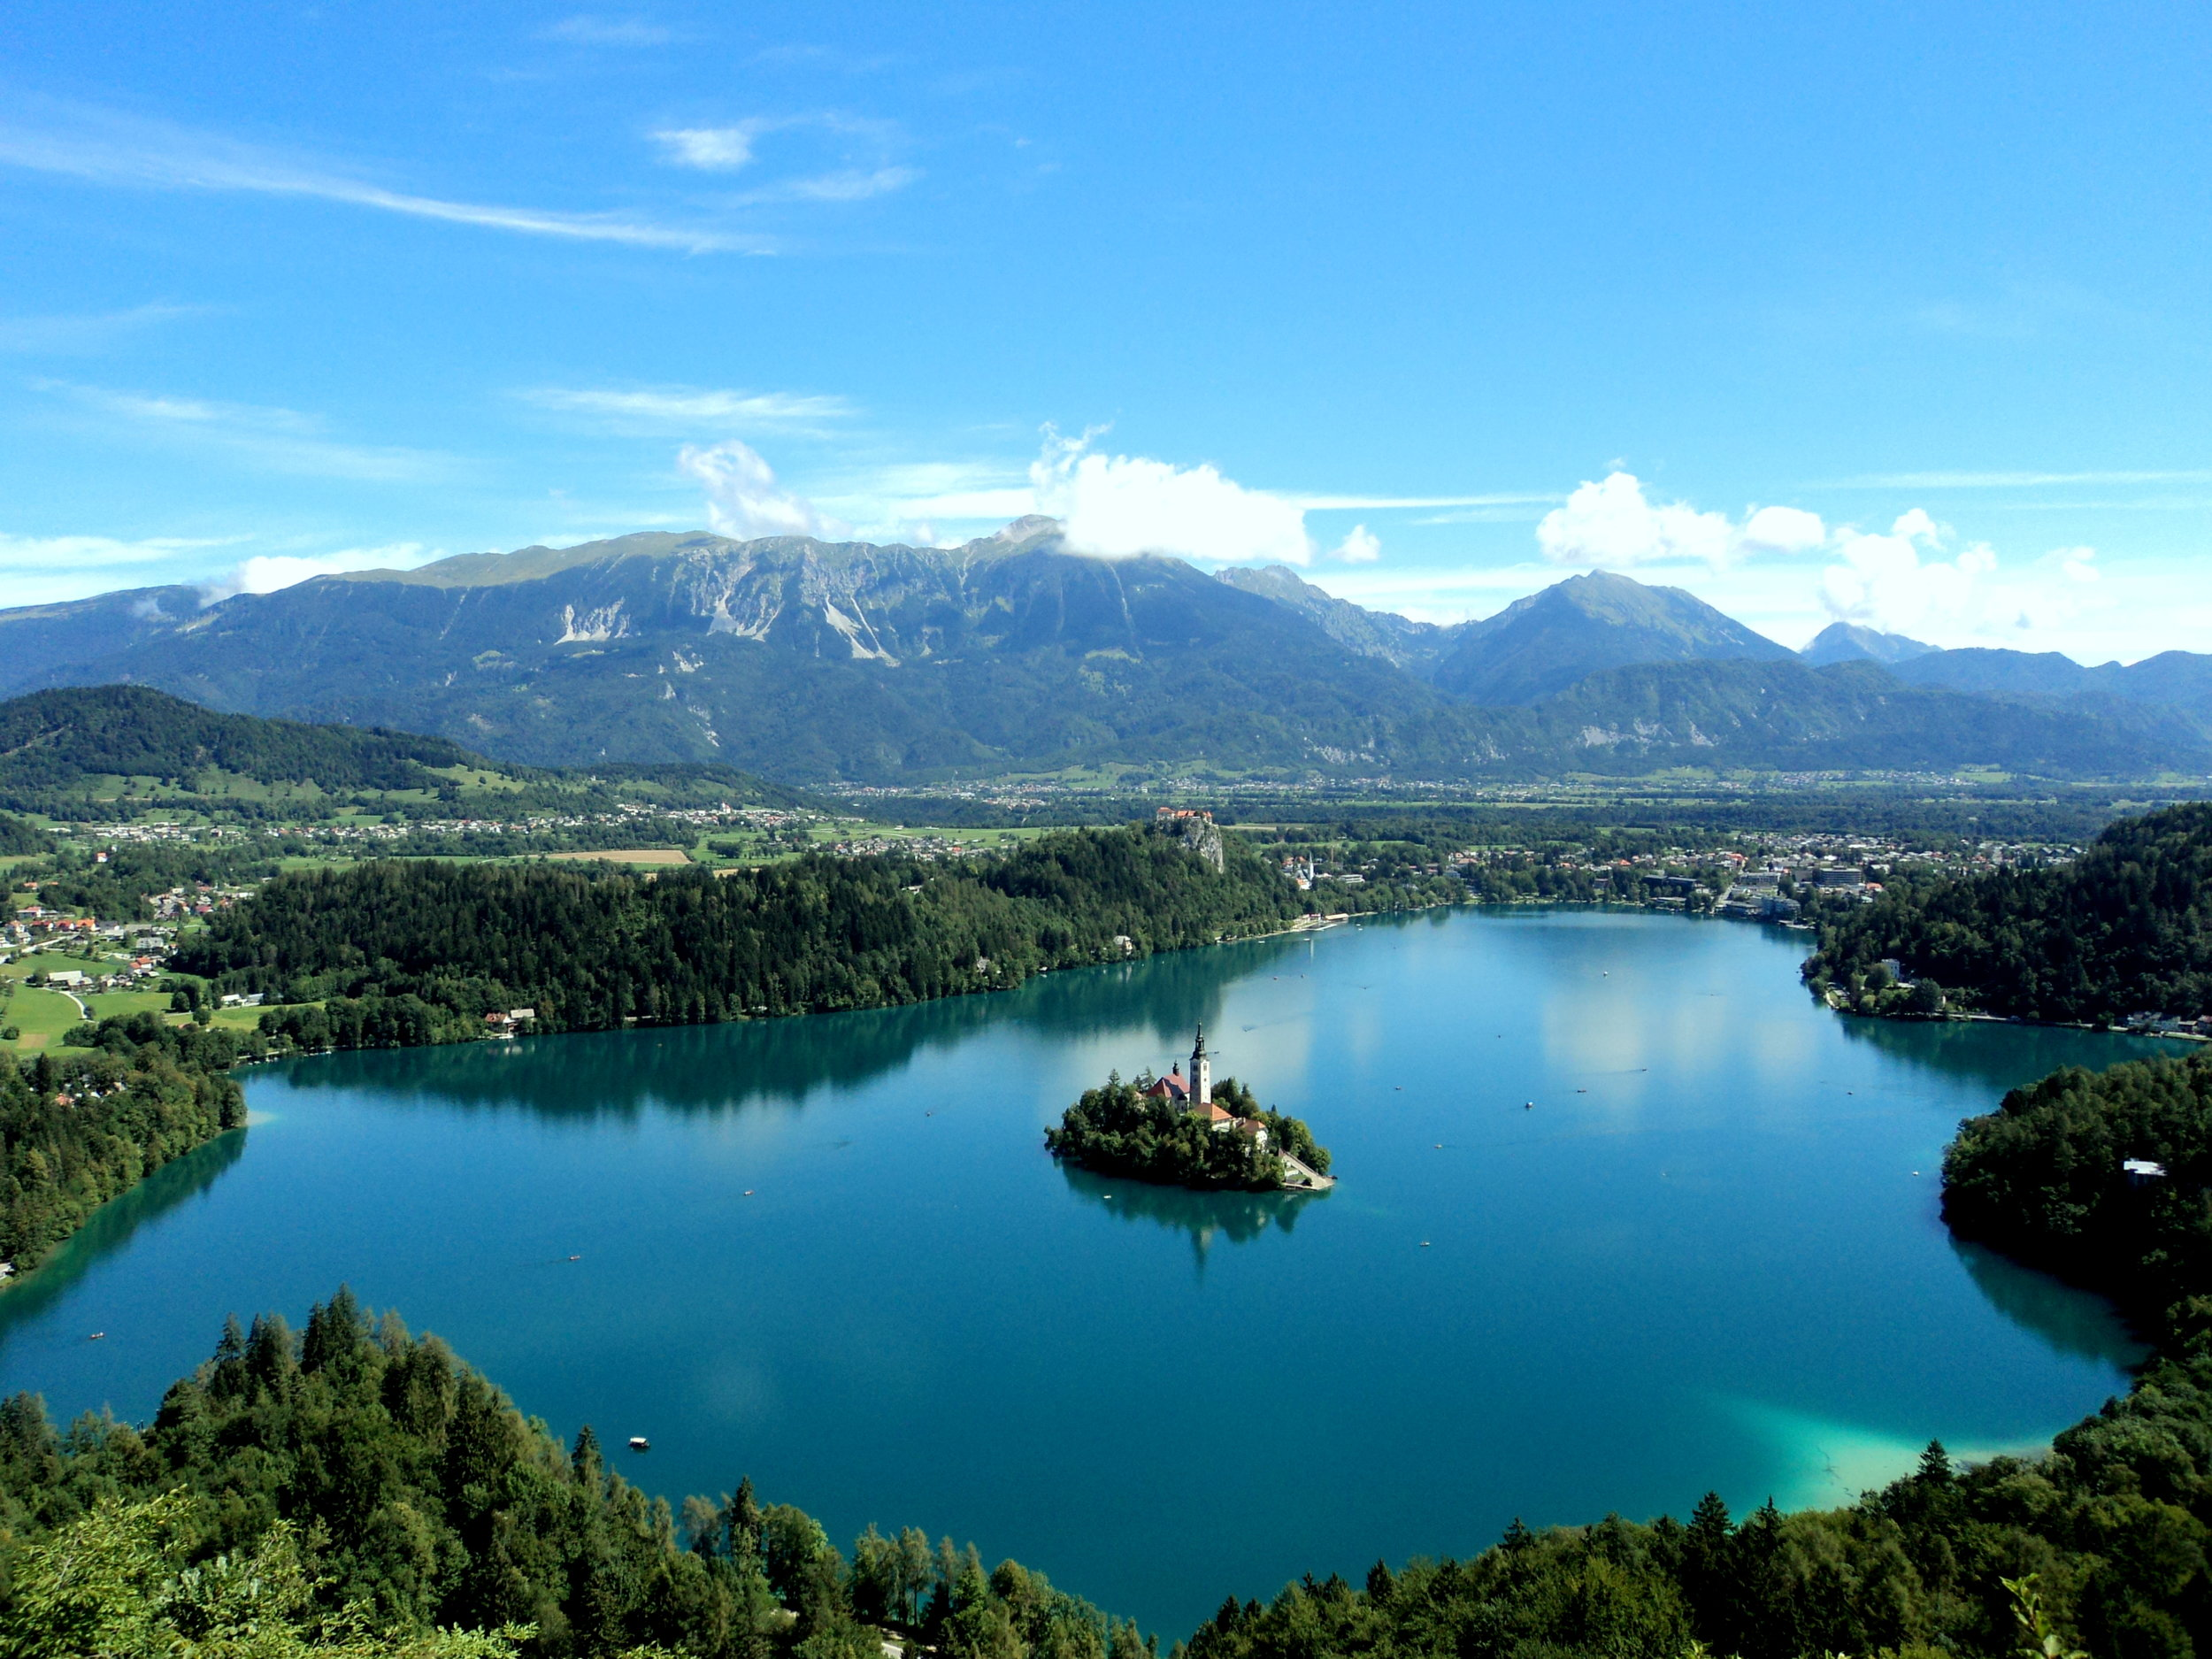 Lake_Bled_from_the_Mountain.jpg